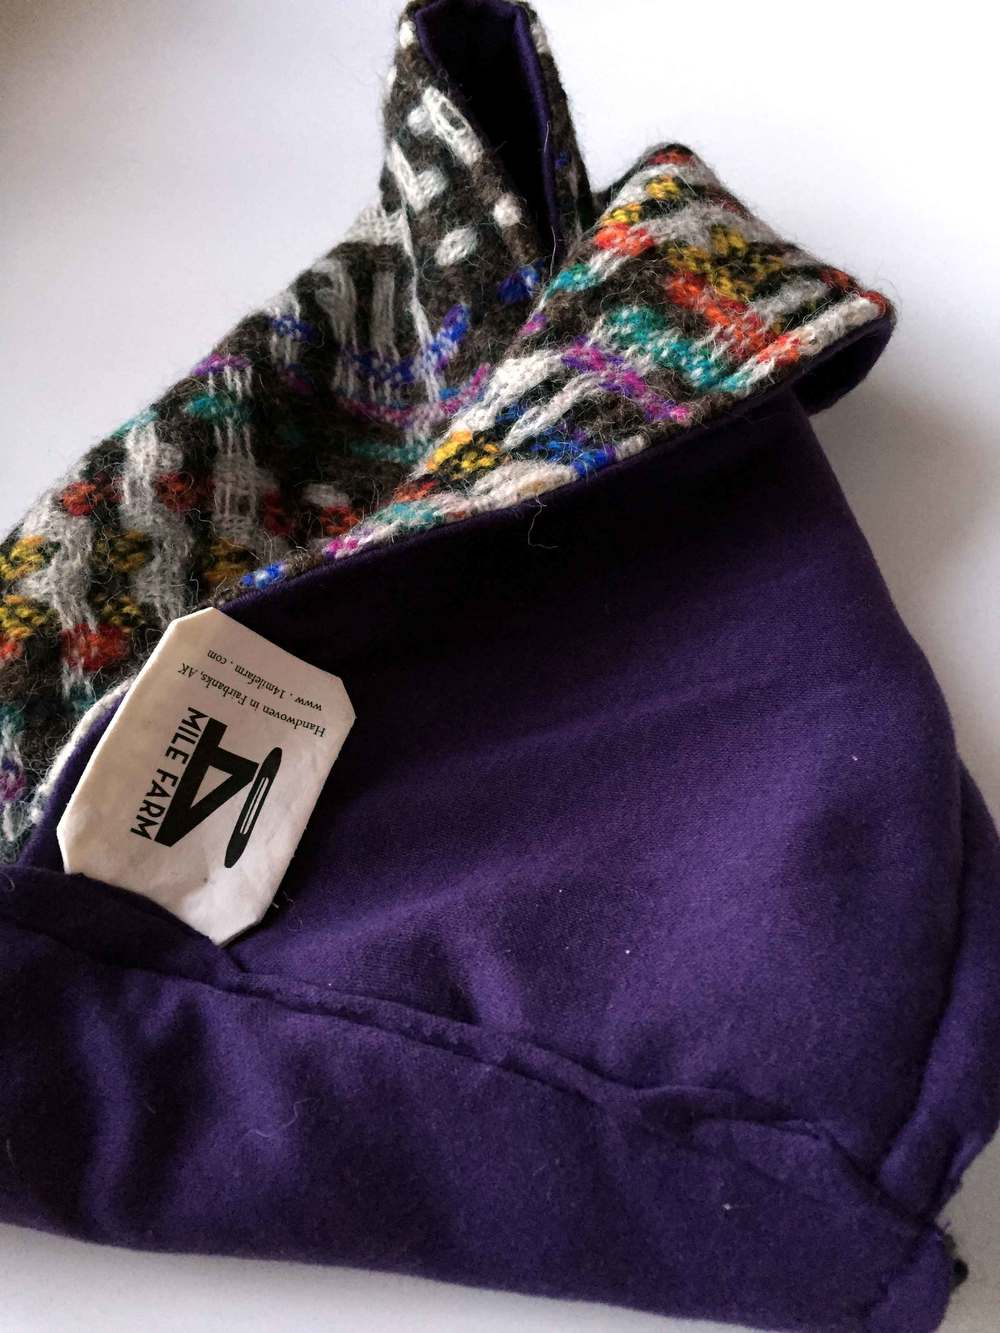 Doubleweave Alpaca Cowl | 14 Mile Farm Handwoven Babywearing Wraps and Heirloom Textiles